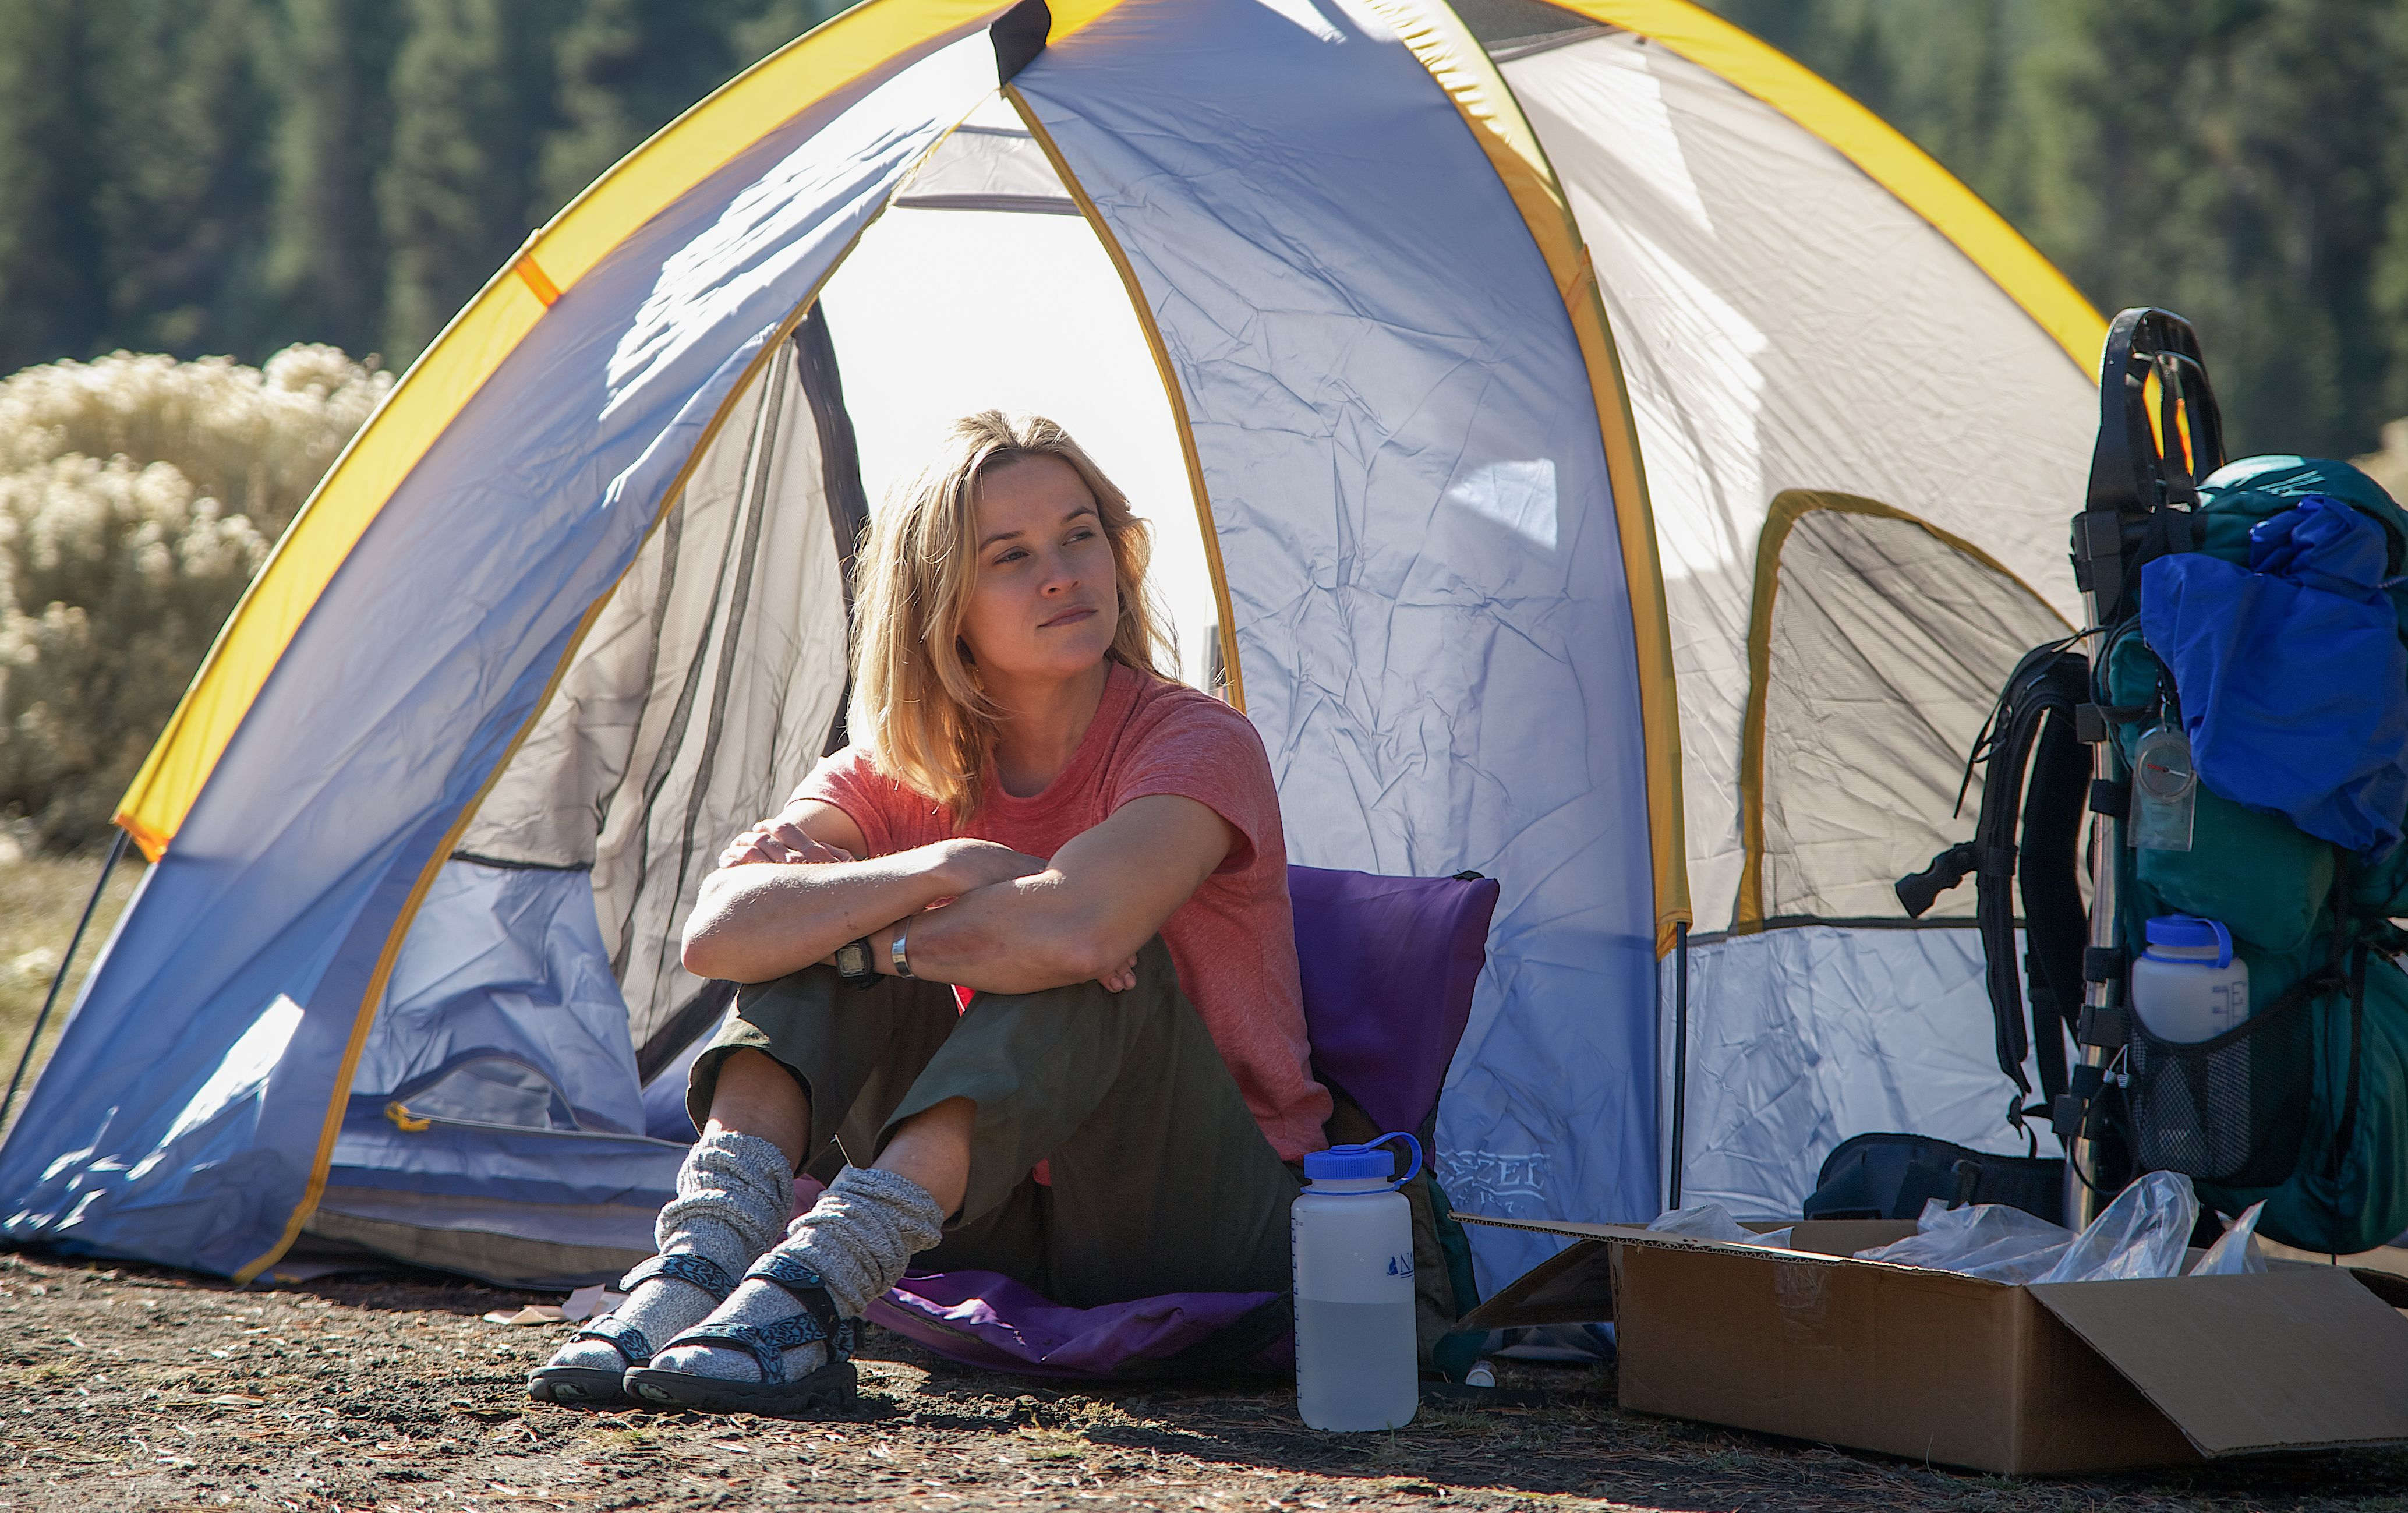 Reese Witherspoon in front of her tent, retro sandals and so